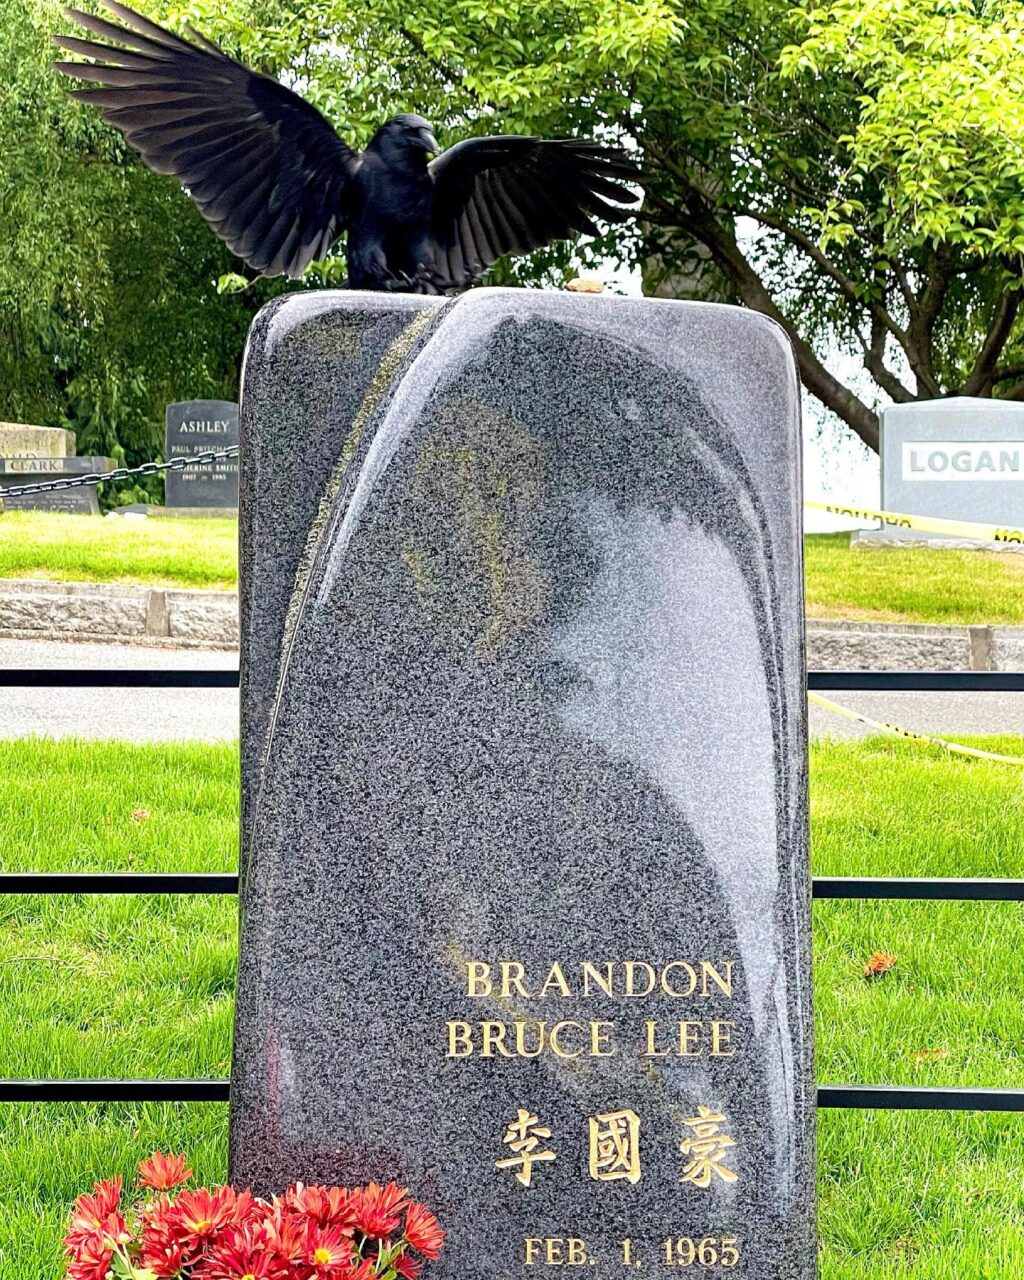 Brandon Lee Grave 1024x1280 - Photographer Takes the PERFECT Photo at the Grave of Brandon Lee